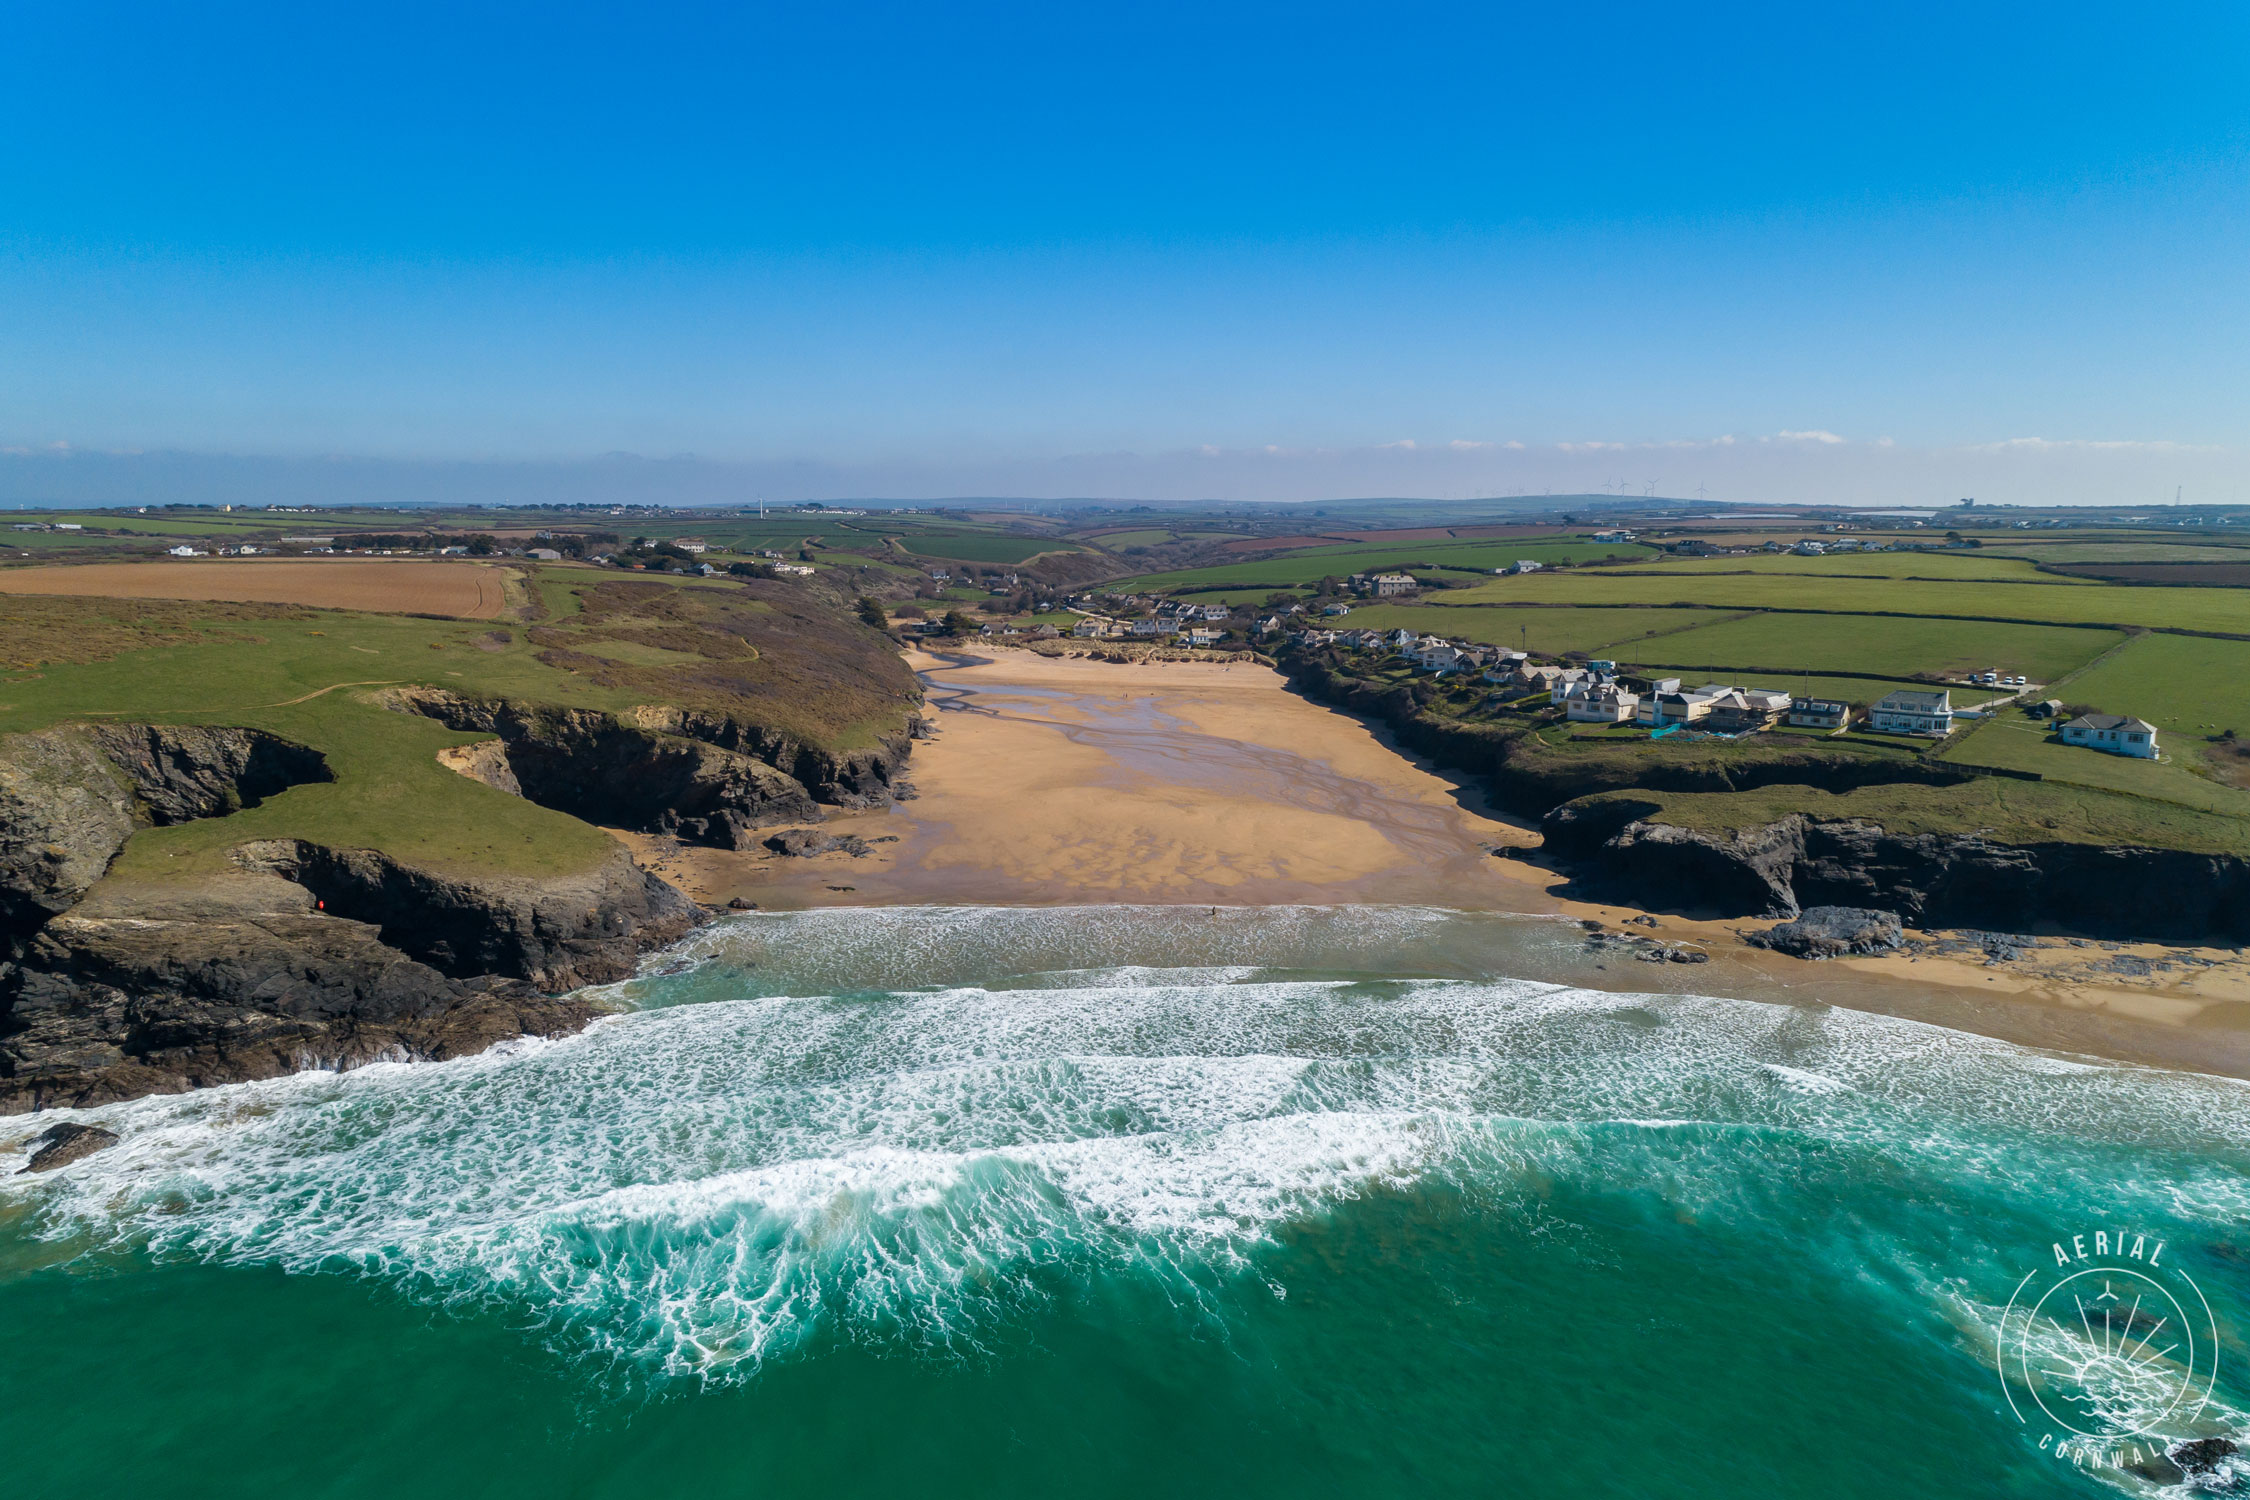 Location: Porthcothan Bay